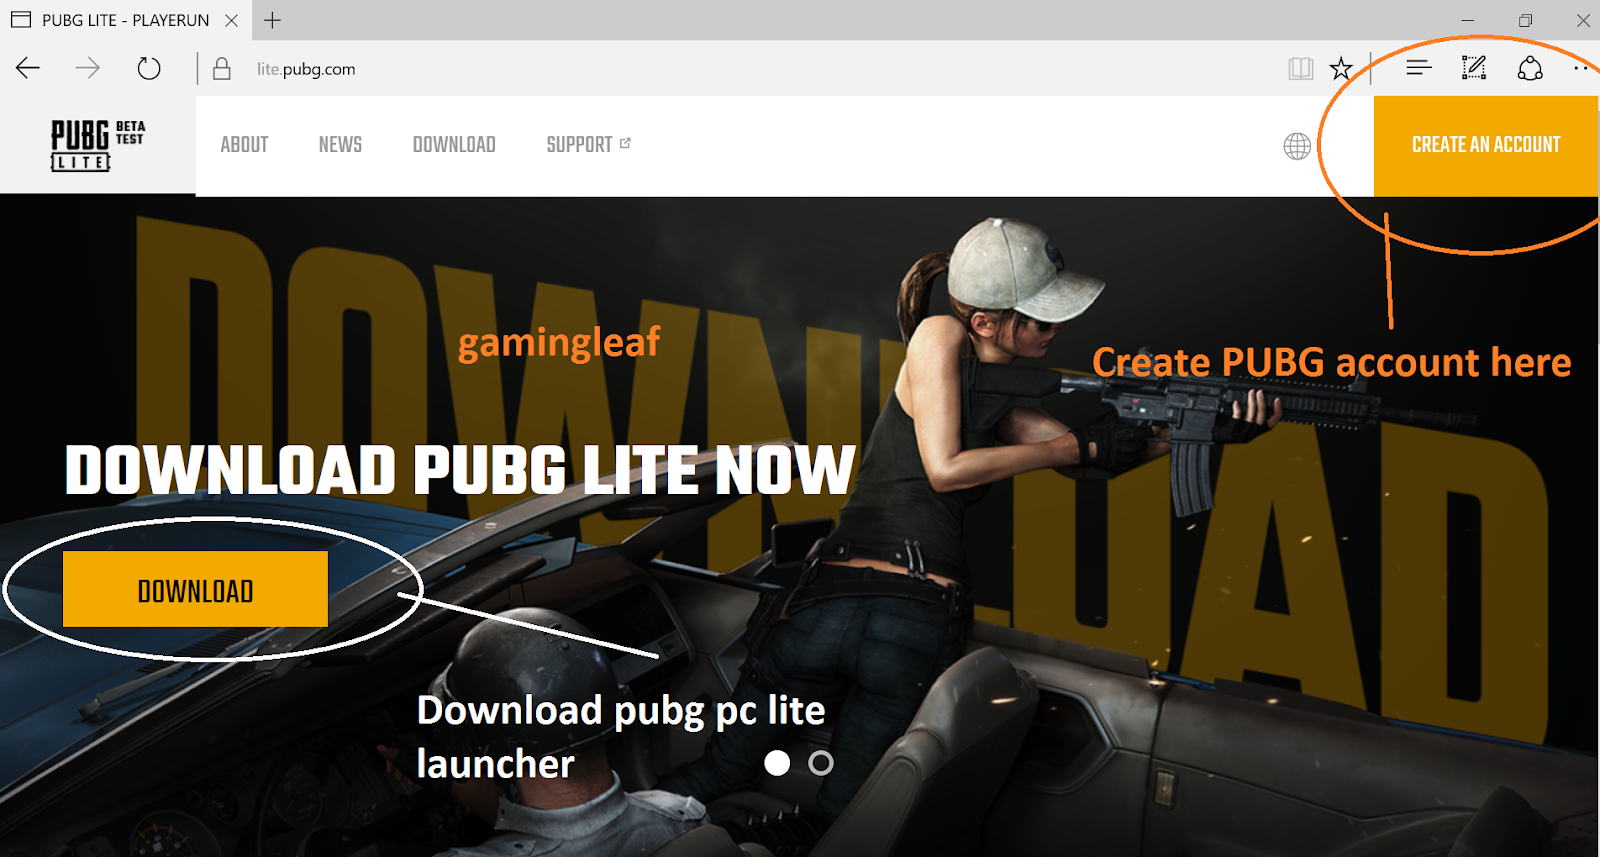 best vpn to download pubg pc lite